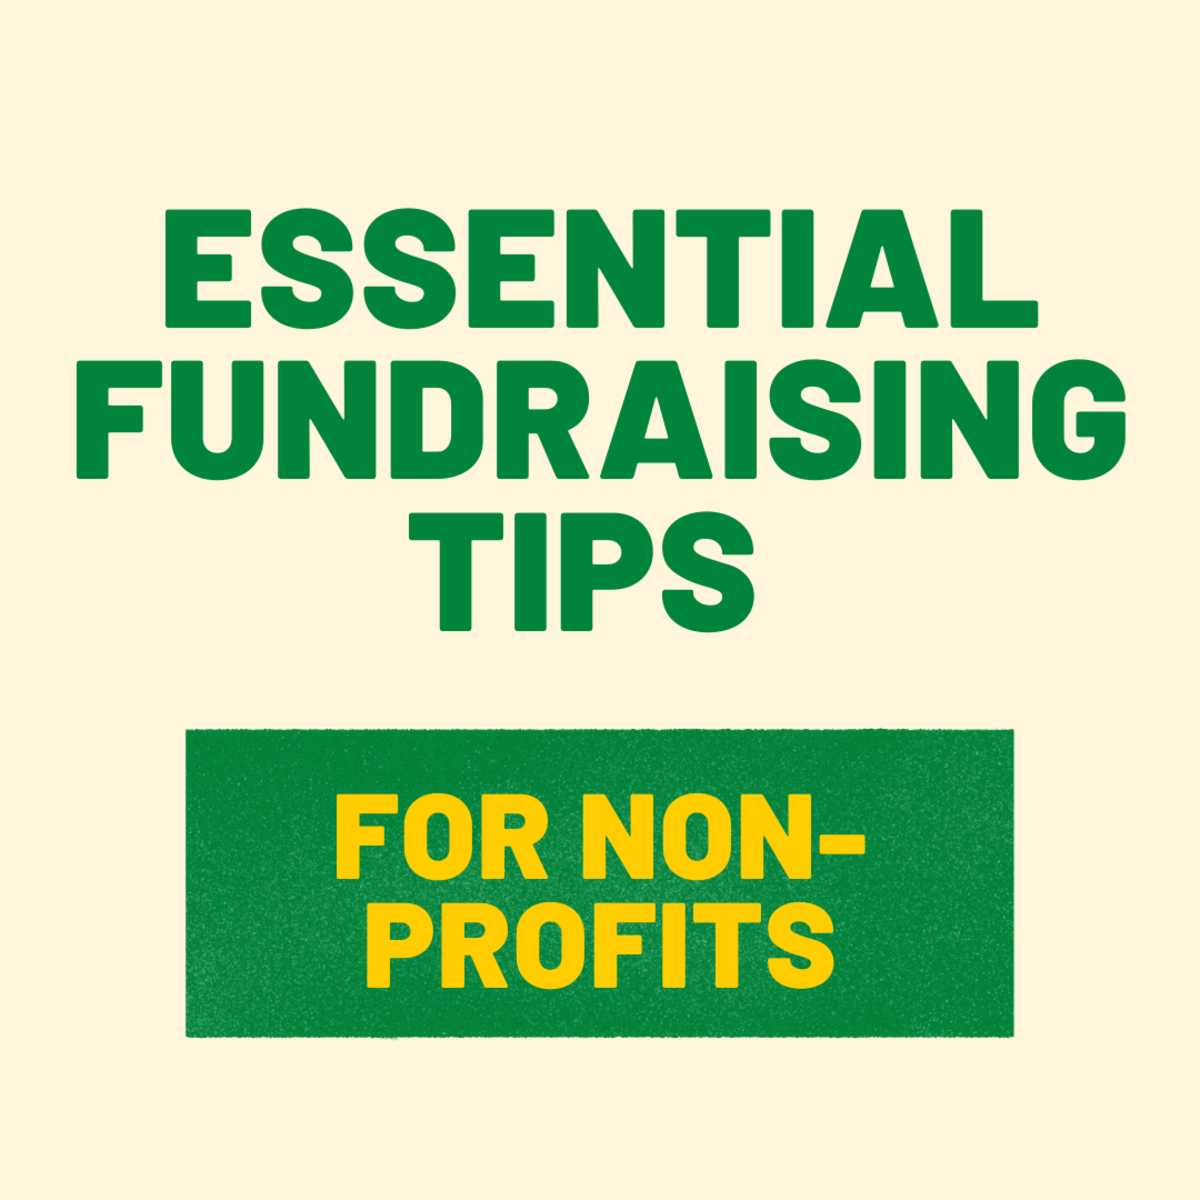 Find out how to fundraise for non-profits effectively!